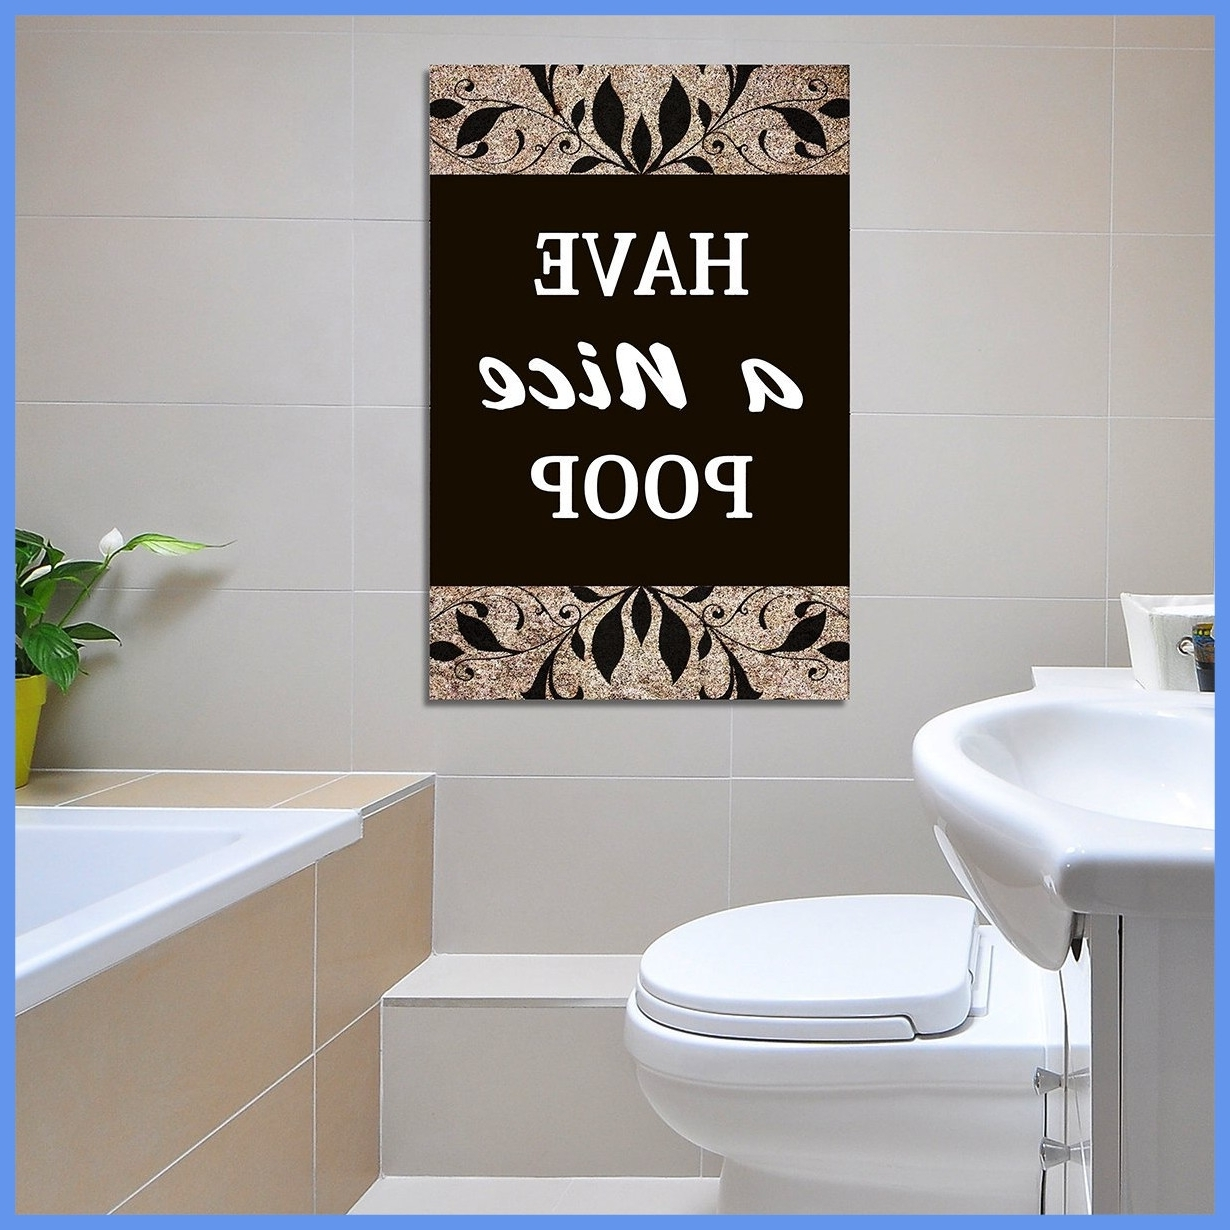 Well Known Unusual Wall Art In Fascinating Unusual Idea Wall Art Bathroom Have A Nice Poop Humor (View 13 of 15)